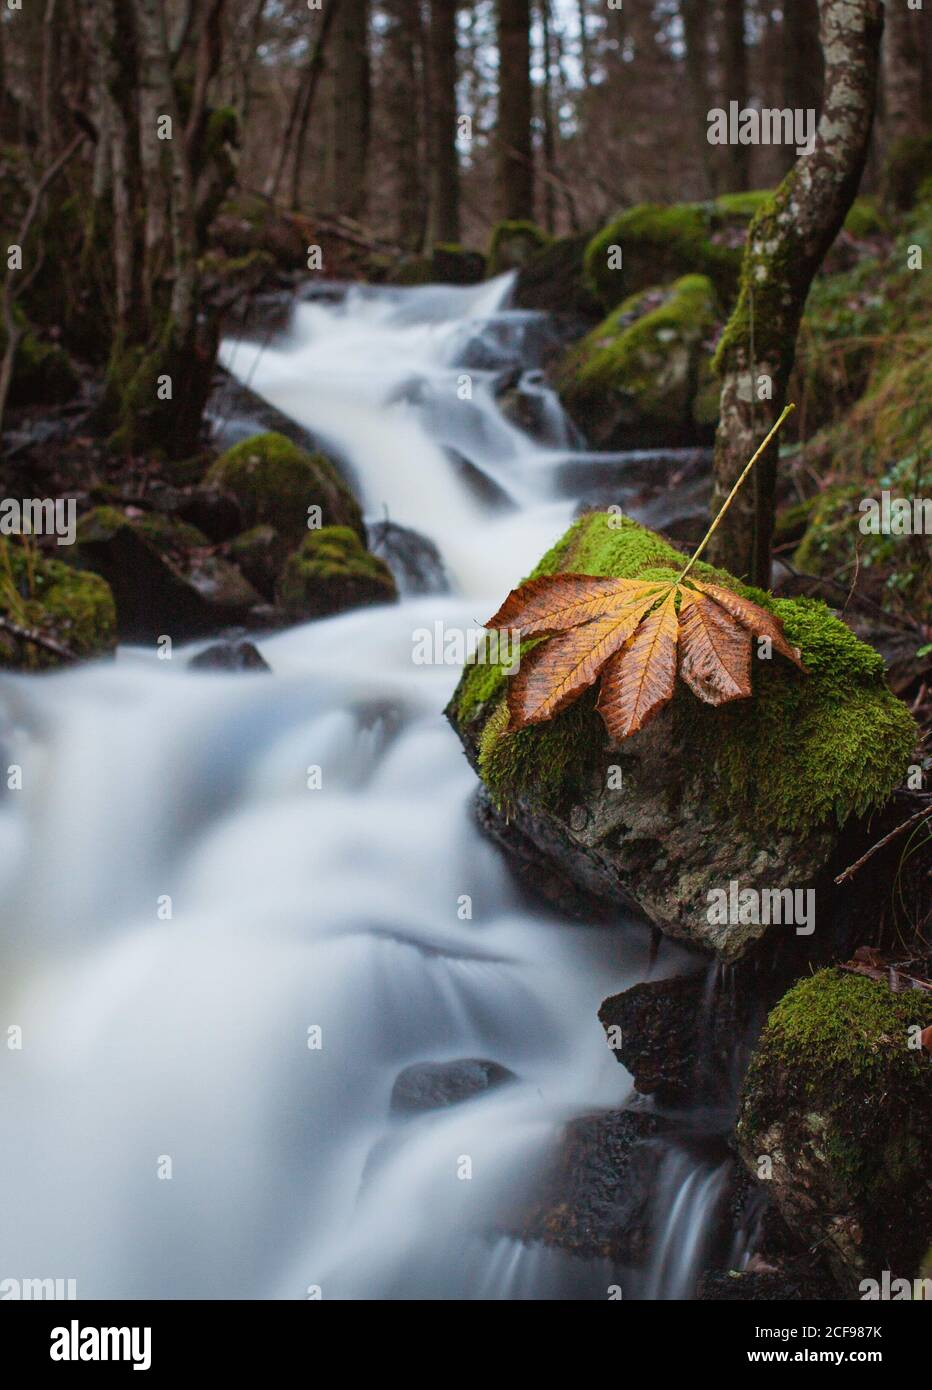 Amazing scenery of narrow river with waterfall cascade flowing through mossy rocky terrain in autumn forest with dry leaf on stone on foreground Stock Photo